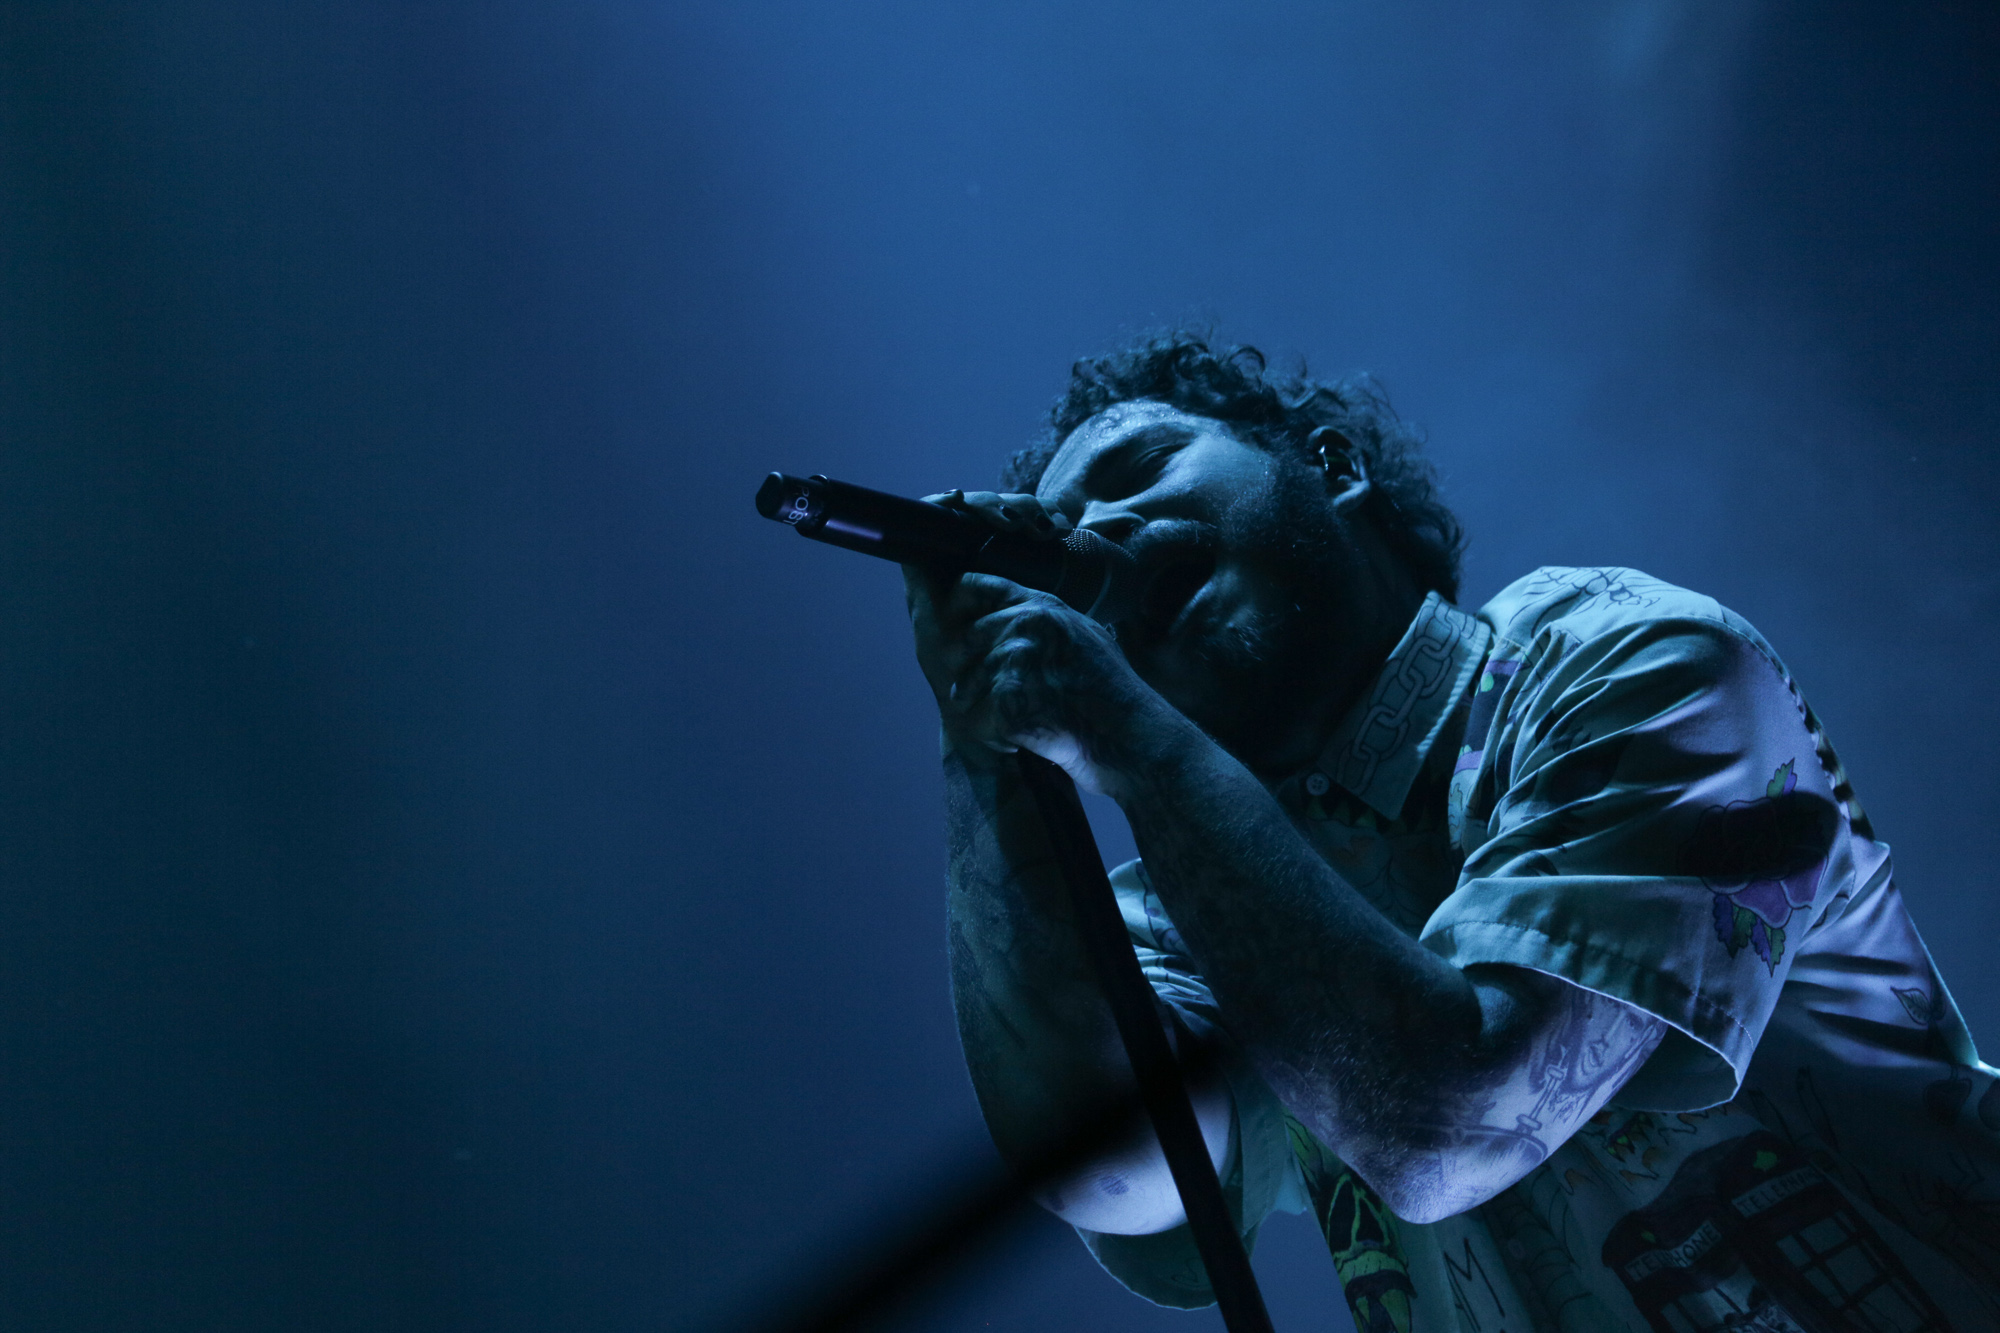 Live Review: Post Malone // O2 Arena, London - 14 03 19 – RIOT